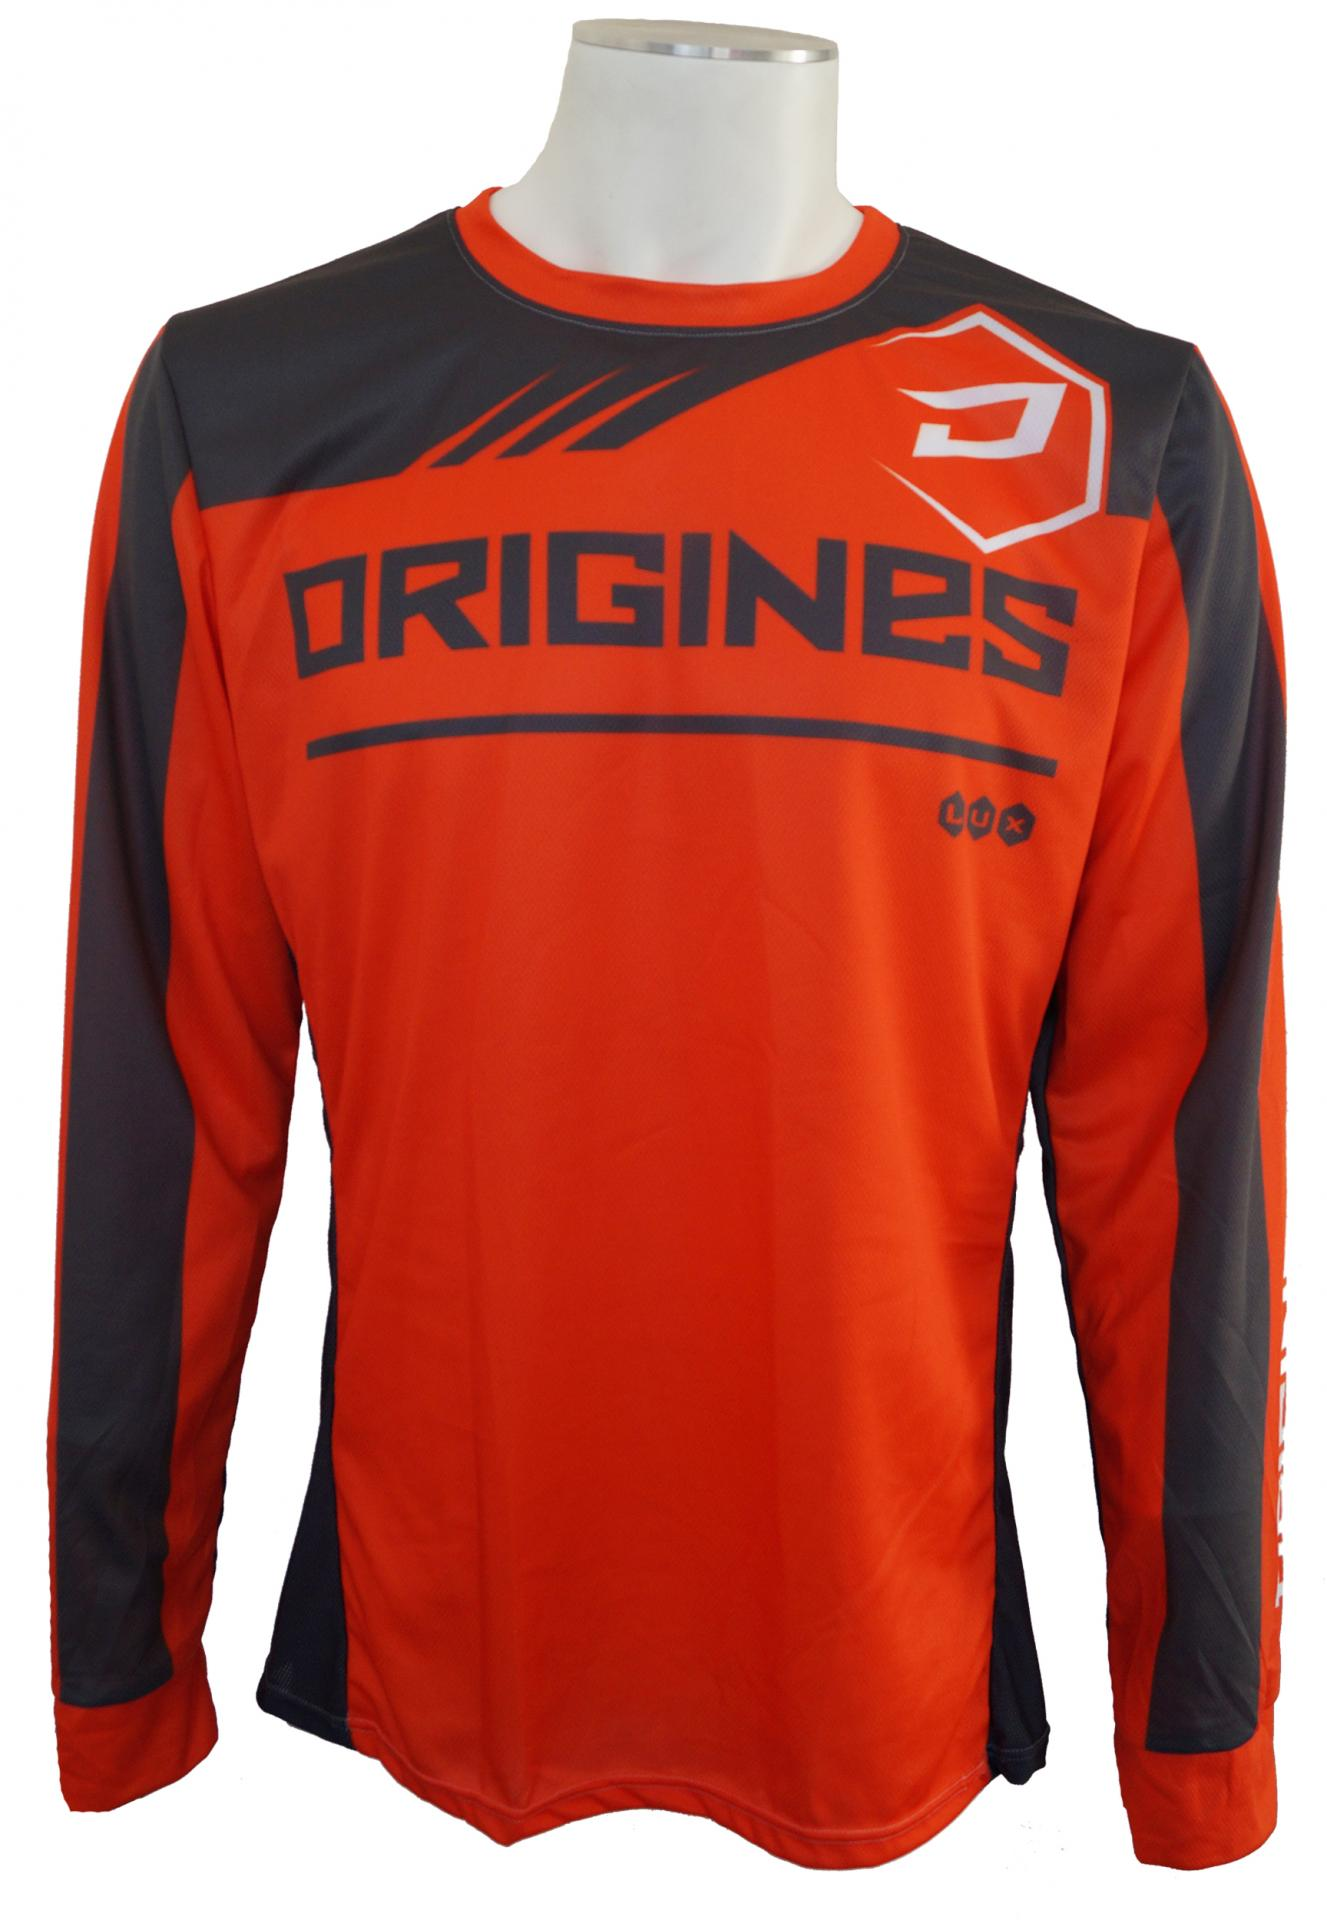 Maillot orange face